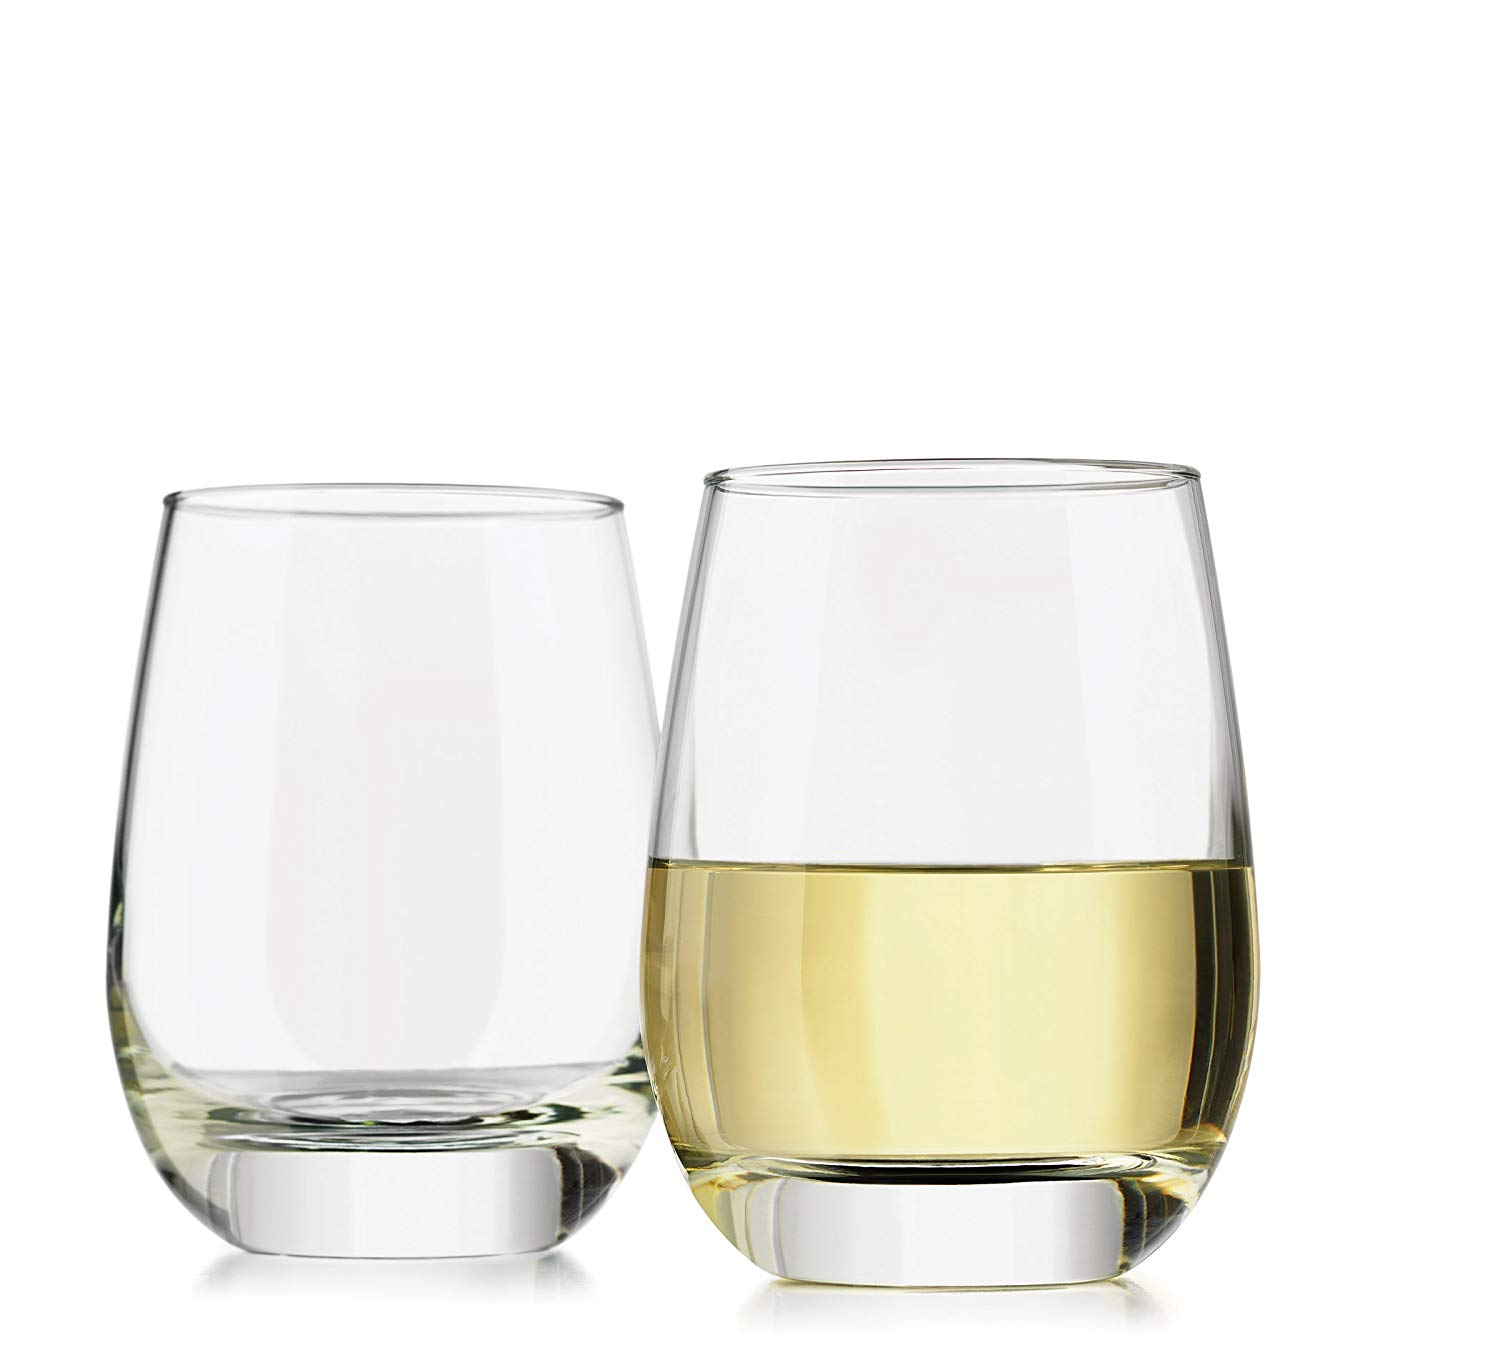 Libbey 4-Piece Alyse Stemless Heavy Base White Wine Glasses, 15.25-Ounce, Clear